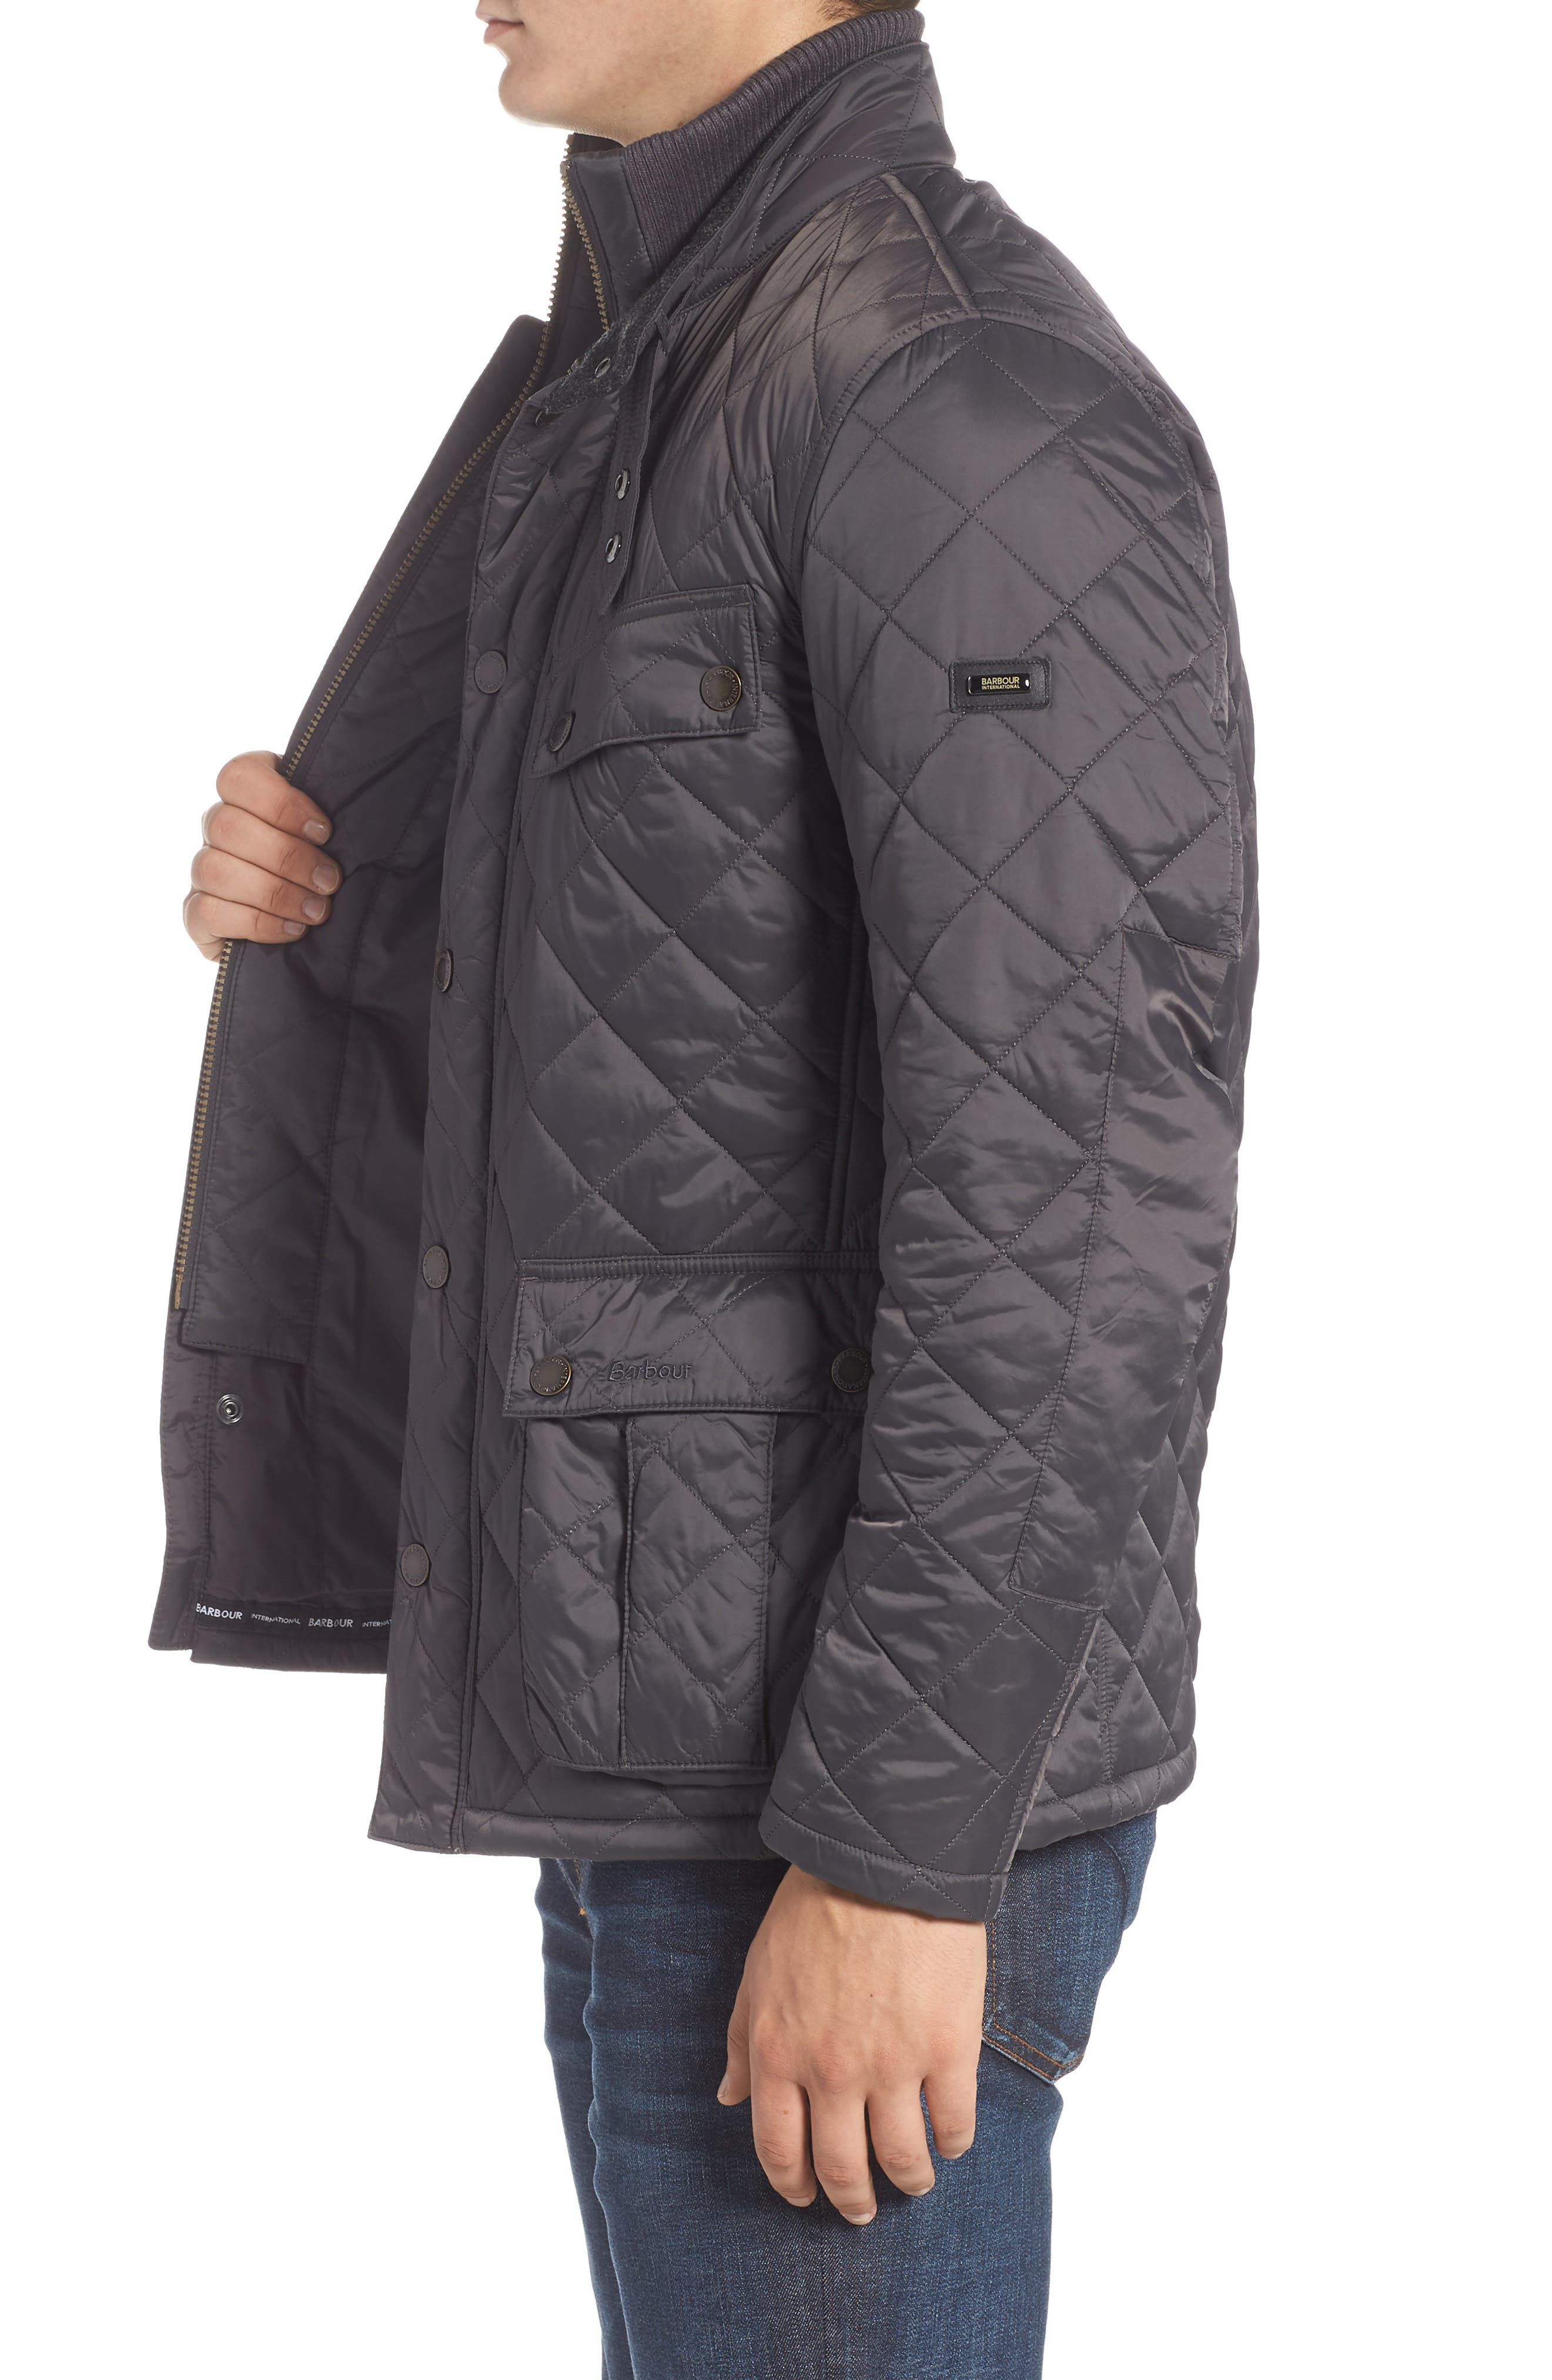 BARBOUR, International Windshield Quilted Jacket, Alternate thumbnail 4, color, CHARCOAL